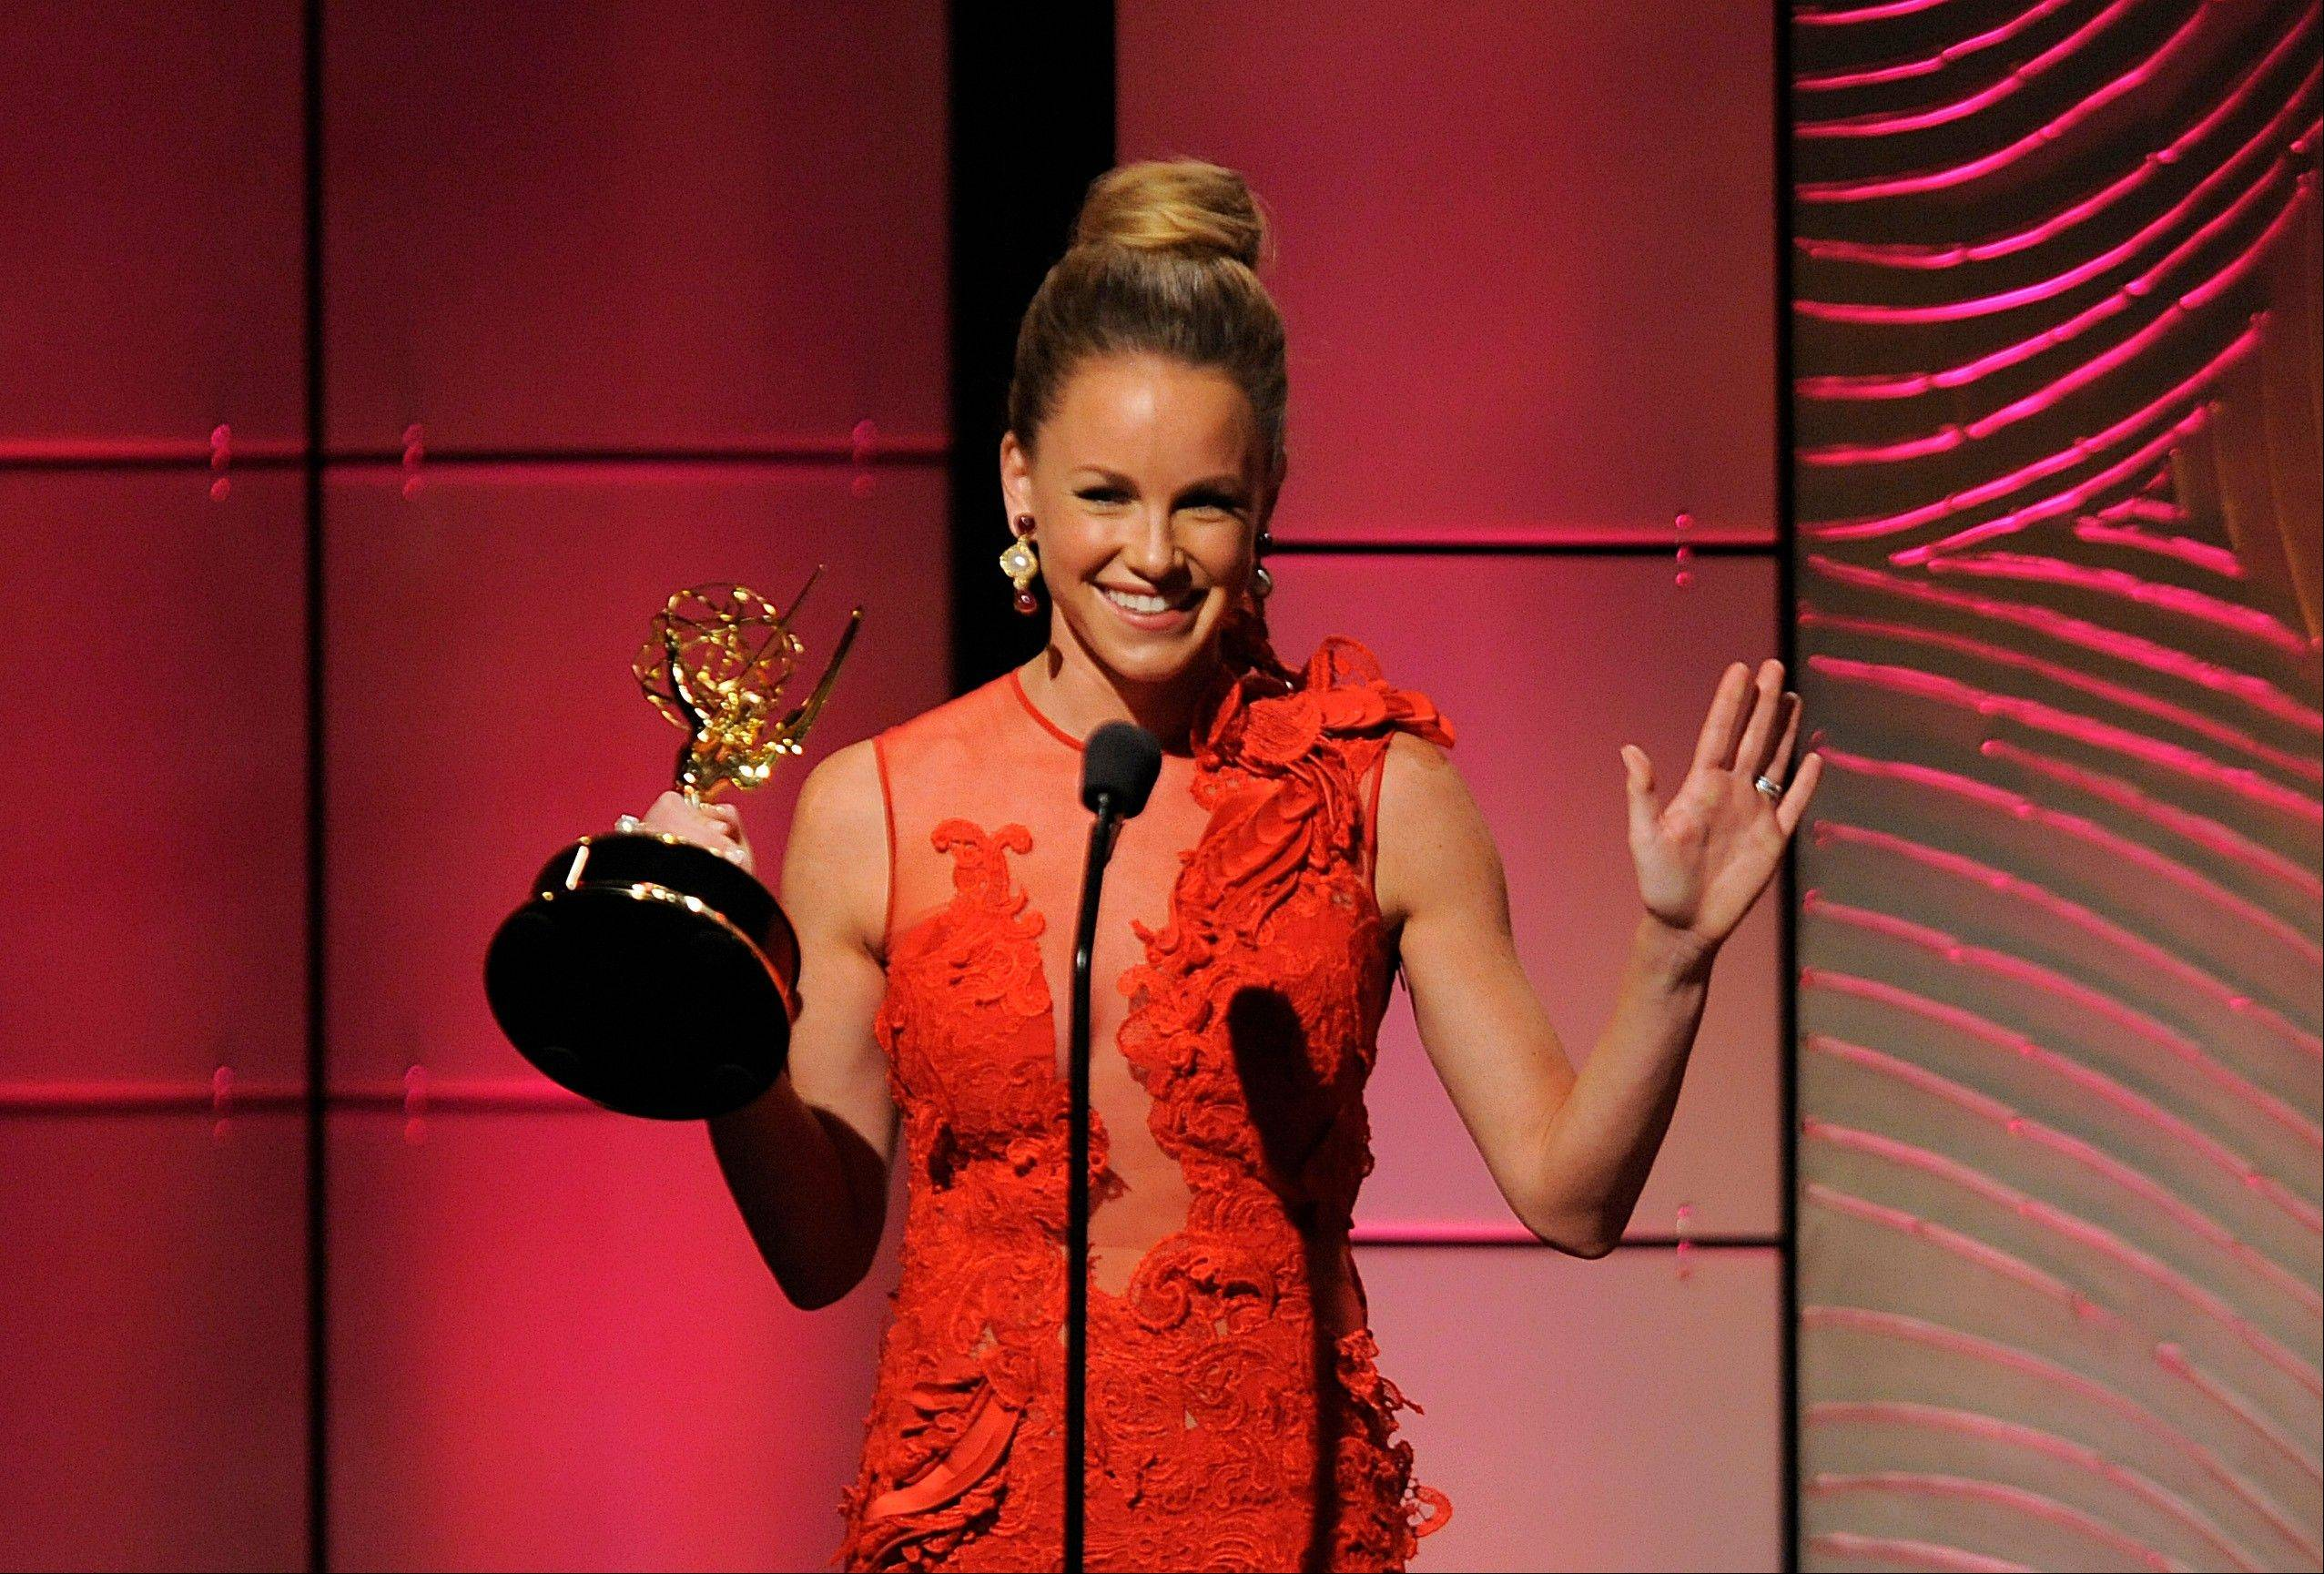 Images: Daytime Emmy Awards